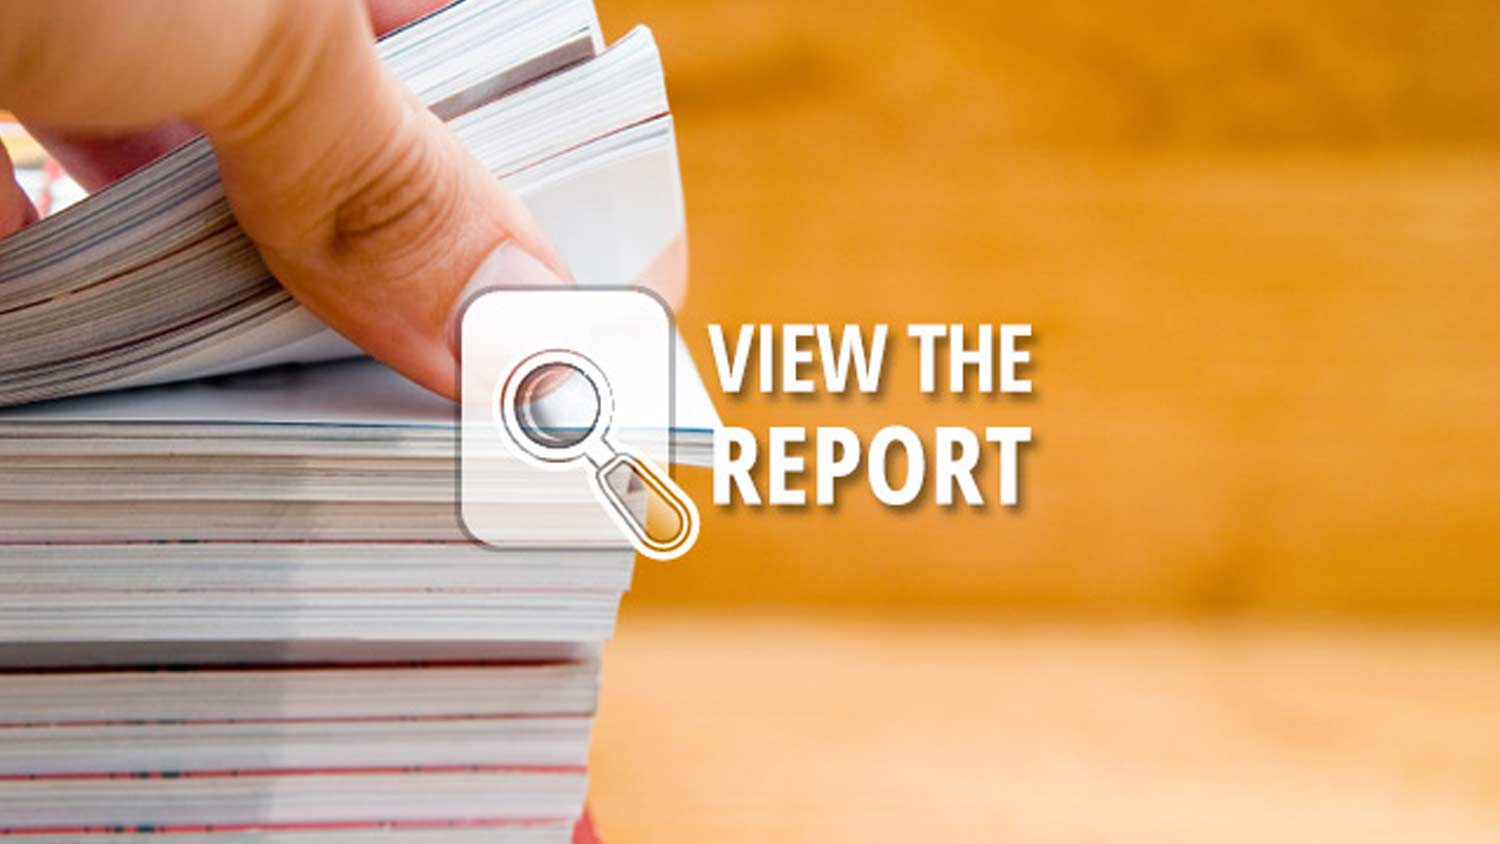 img-view-the-report